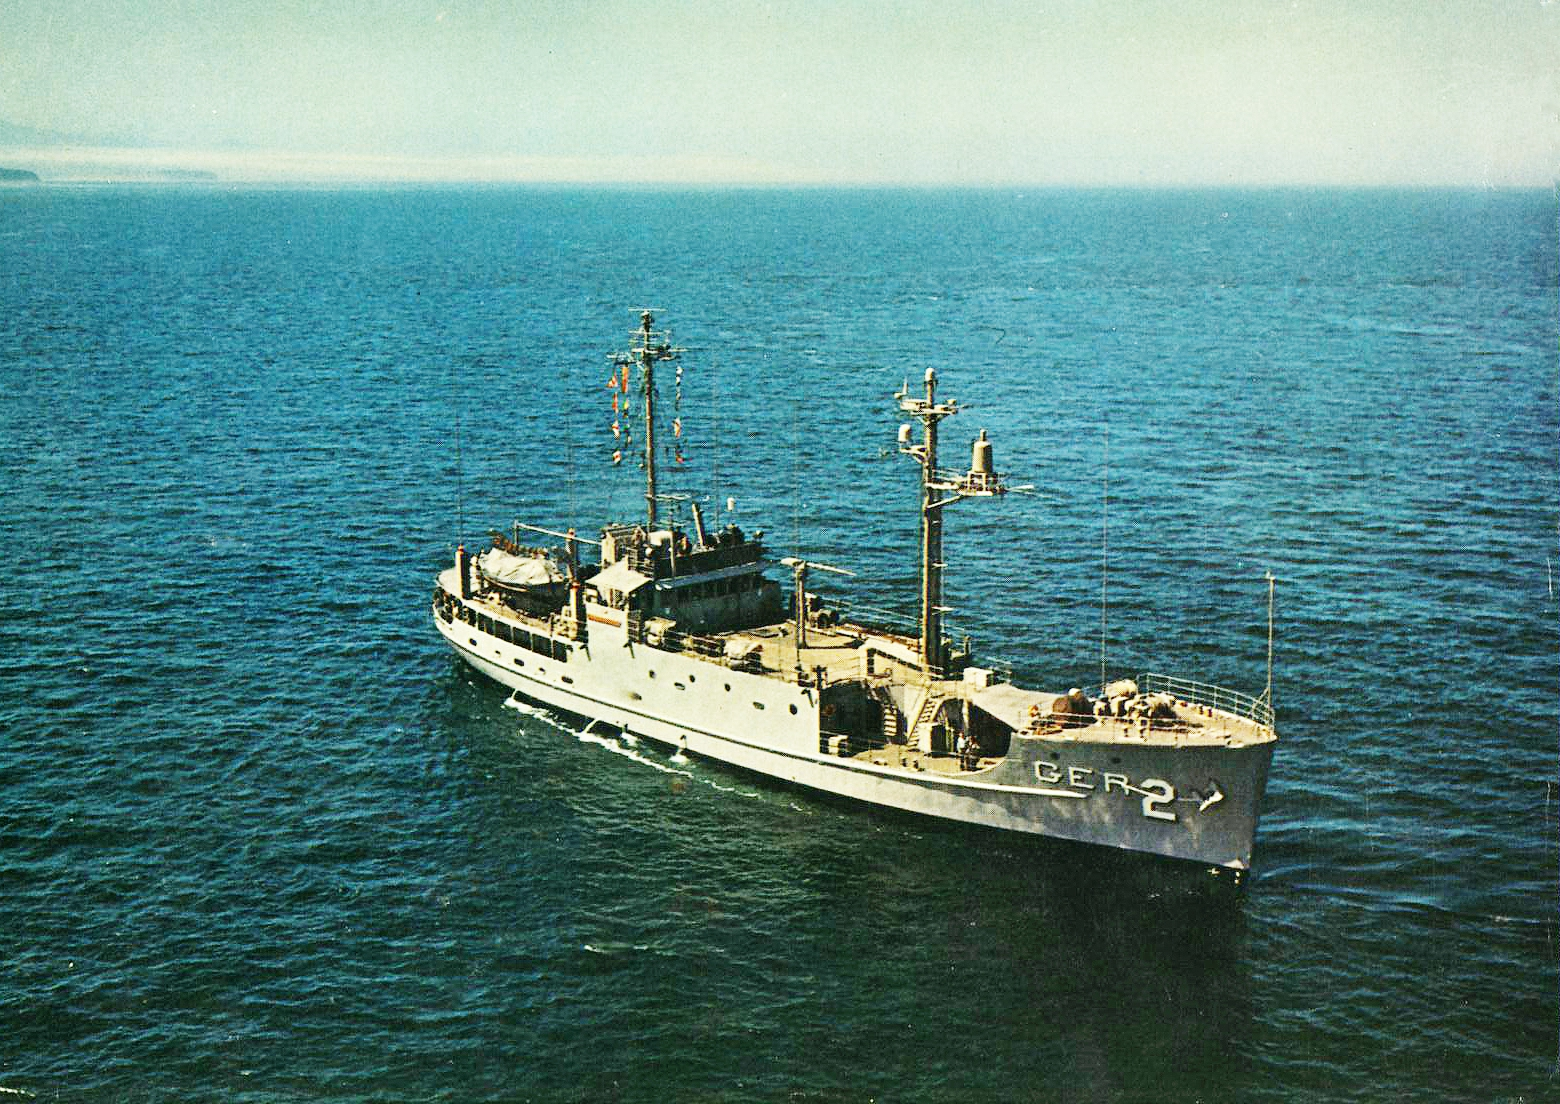 Official US Navy photograph of the U.S.S. Pueblo, taken shortly after it went into service as the AGER-2 intelligence gathering ship on May 13, 1967. Crypto Museum image.